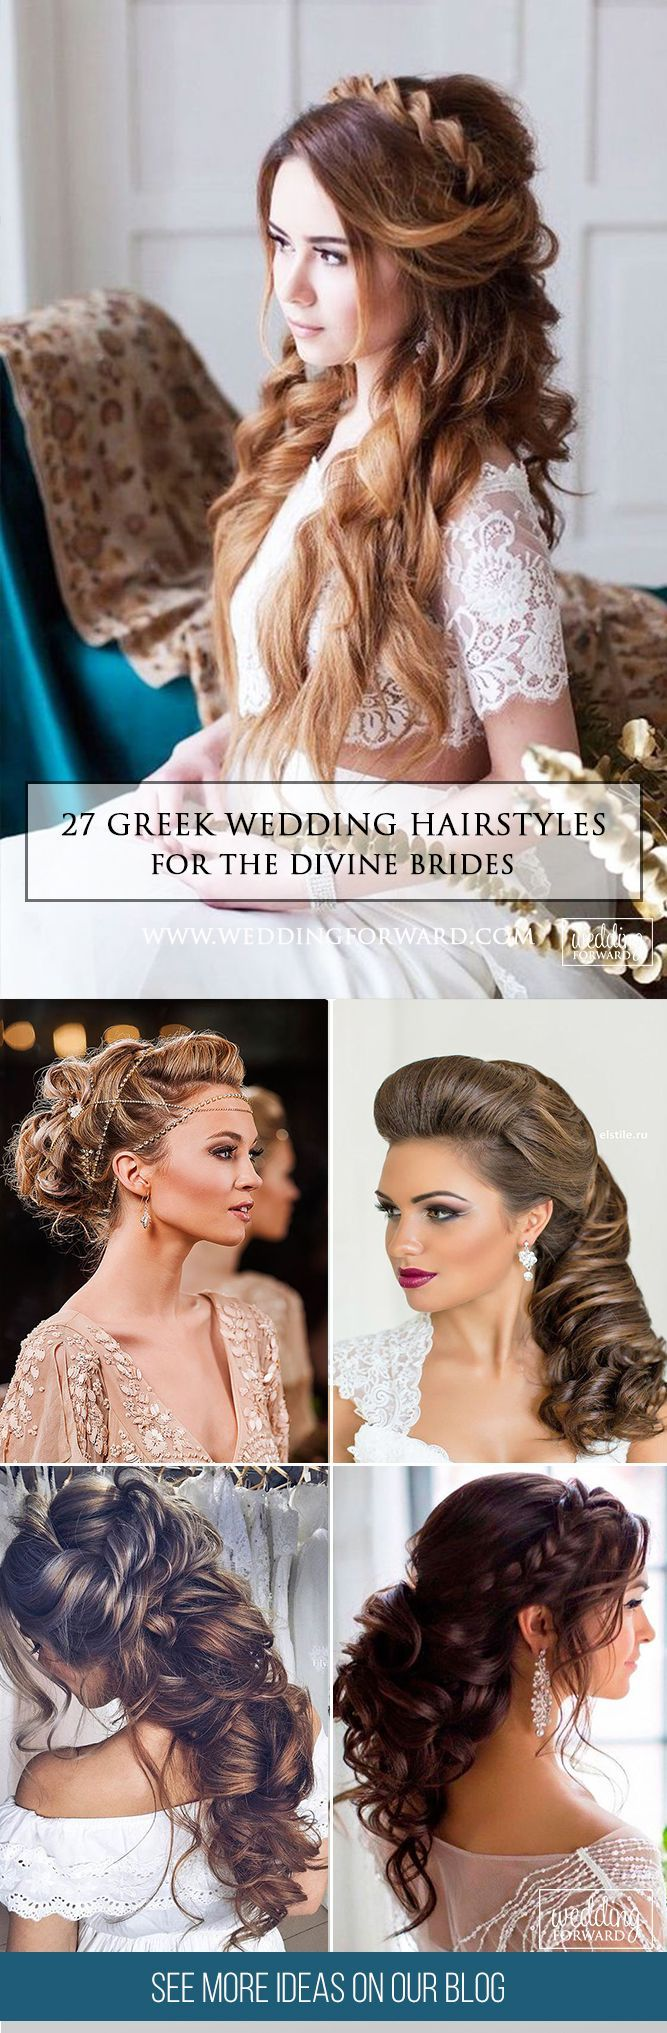 27 Greek Wedding Hairstyles For The Divine Brides  ❤ Greek wedding hairstyles are ideal for warm-weather nuptials. See more: http://www.weddingforward.com/greek-wedding-hairstyles/ #weddings #hairstyles